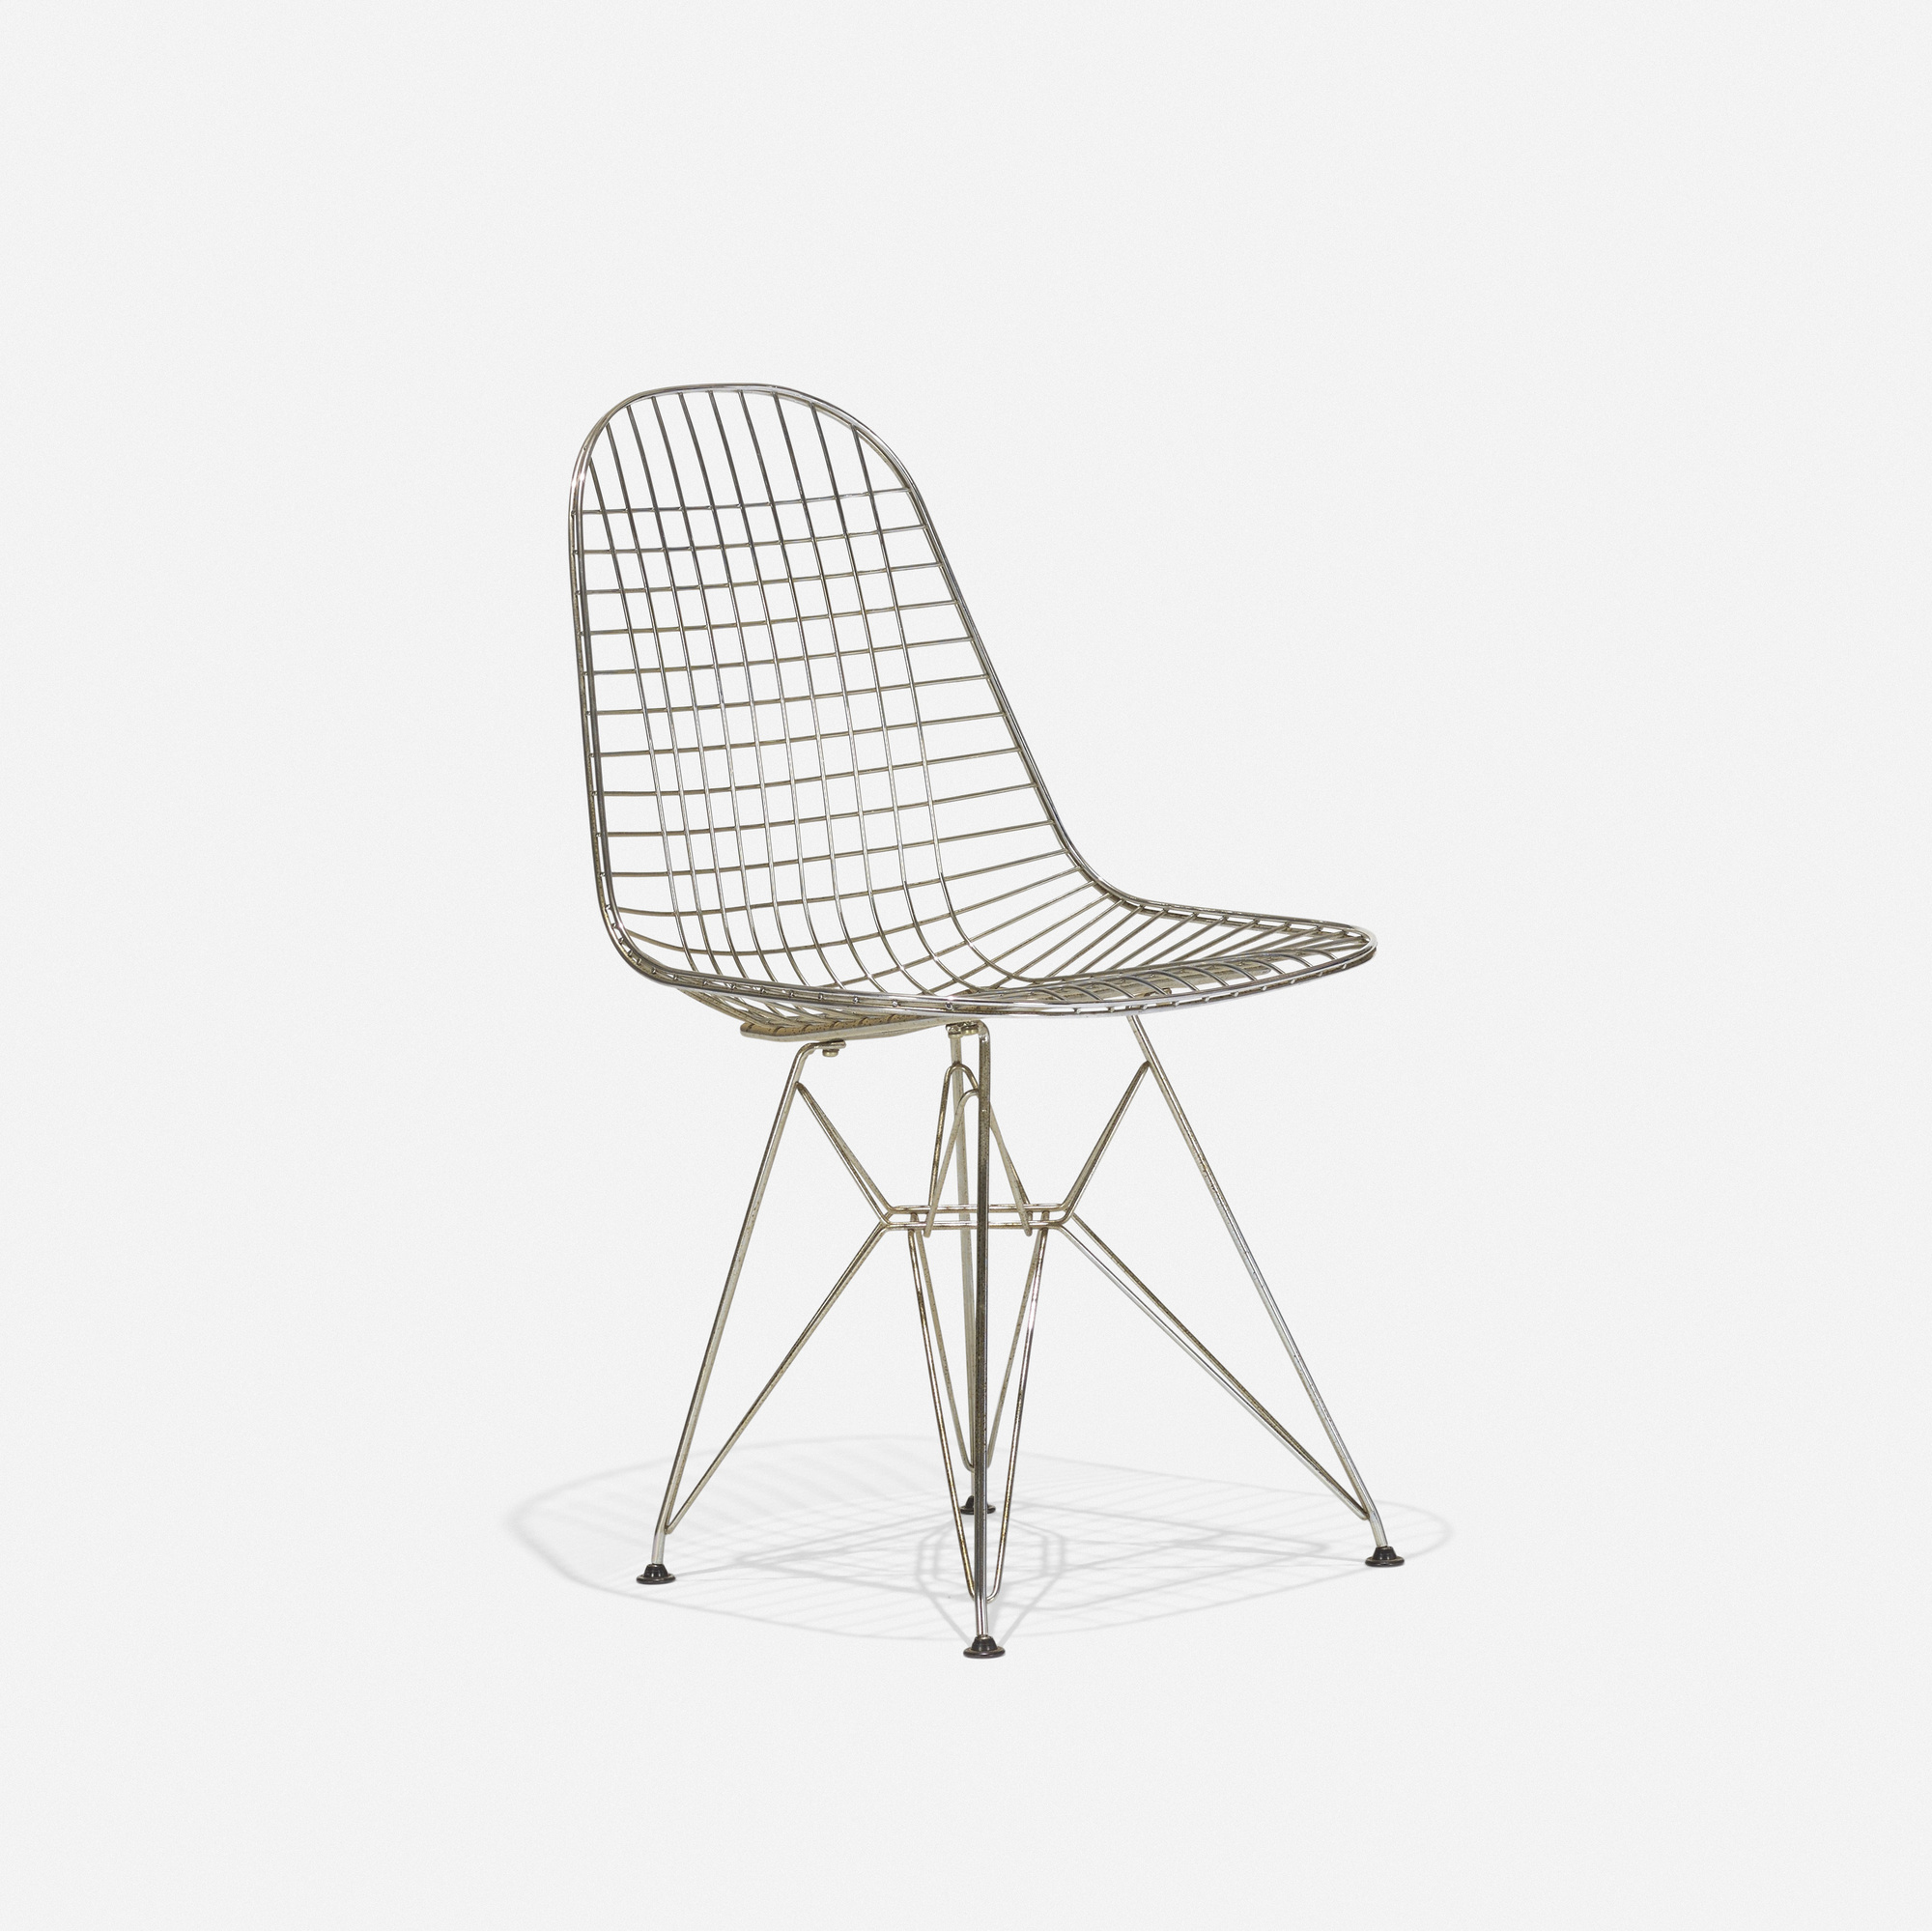 233: Charles and Ray Eames / DKR (2 of 3)